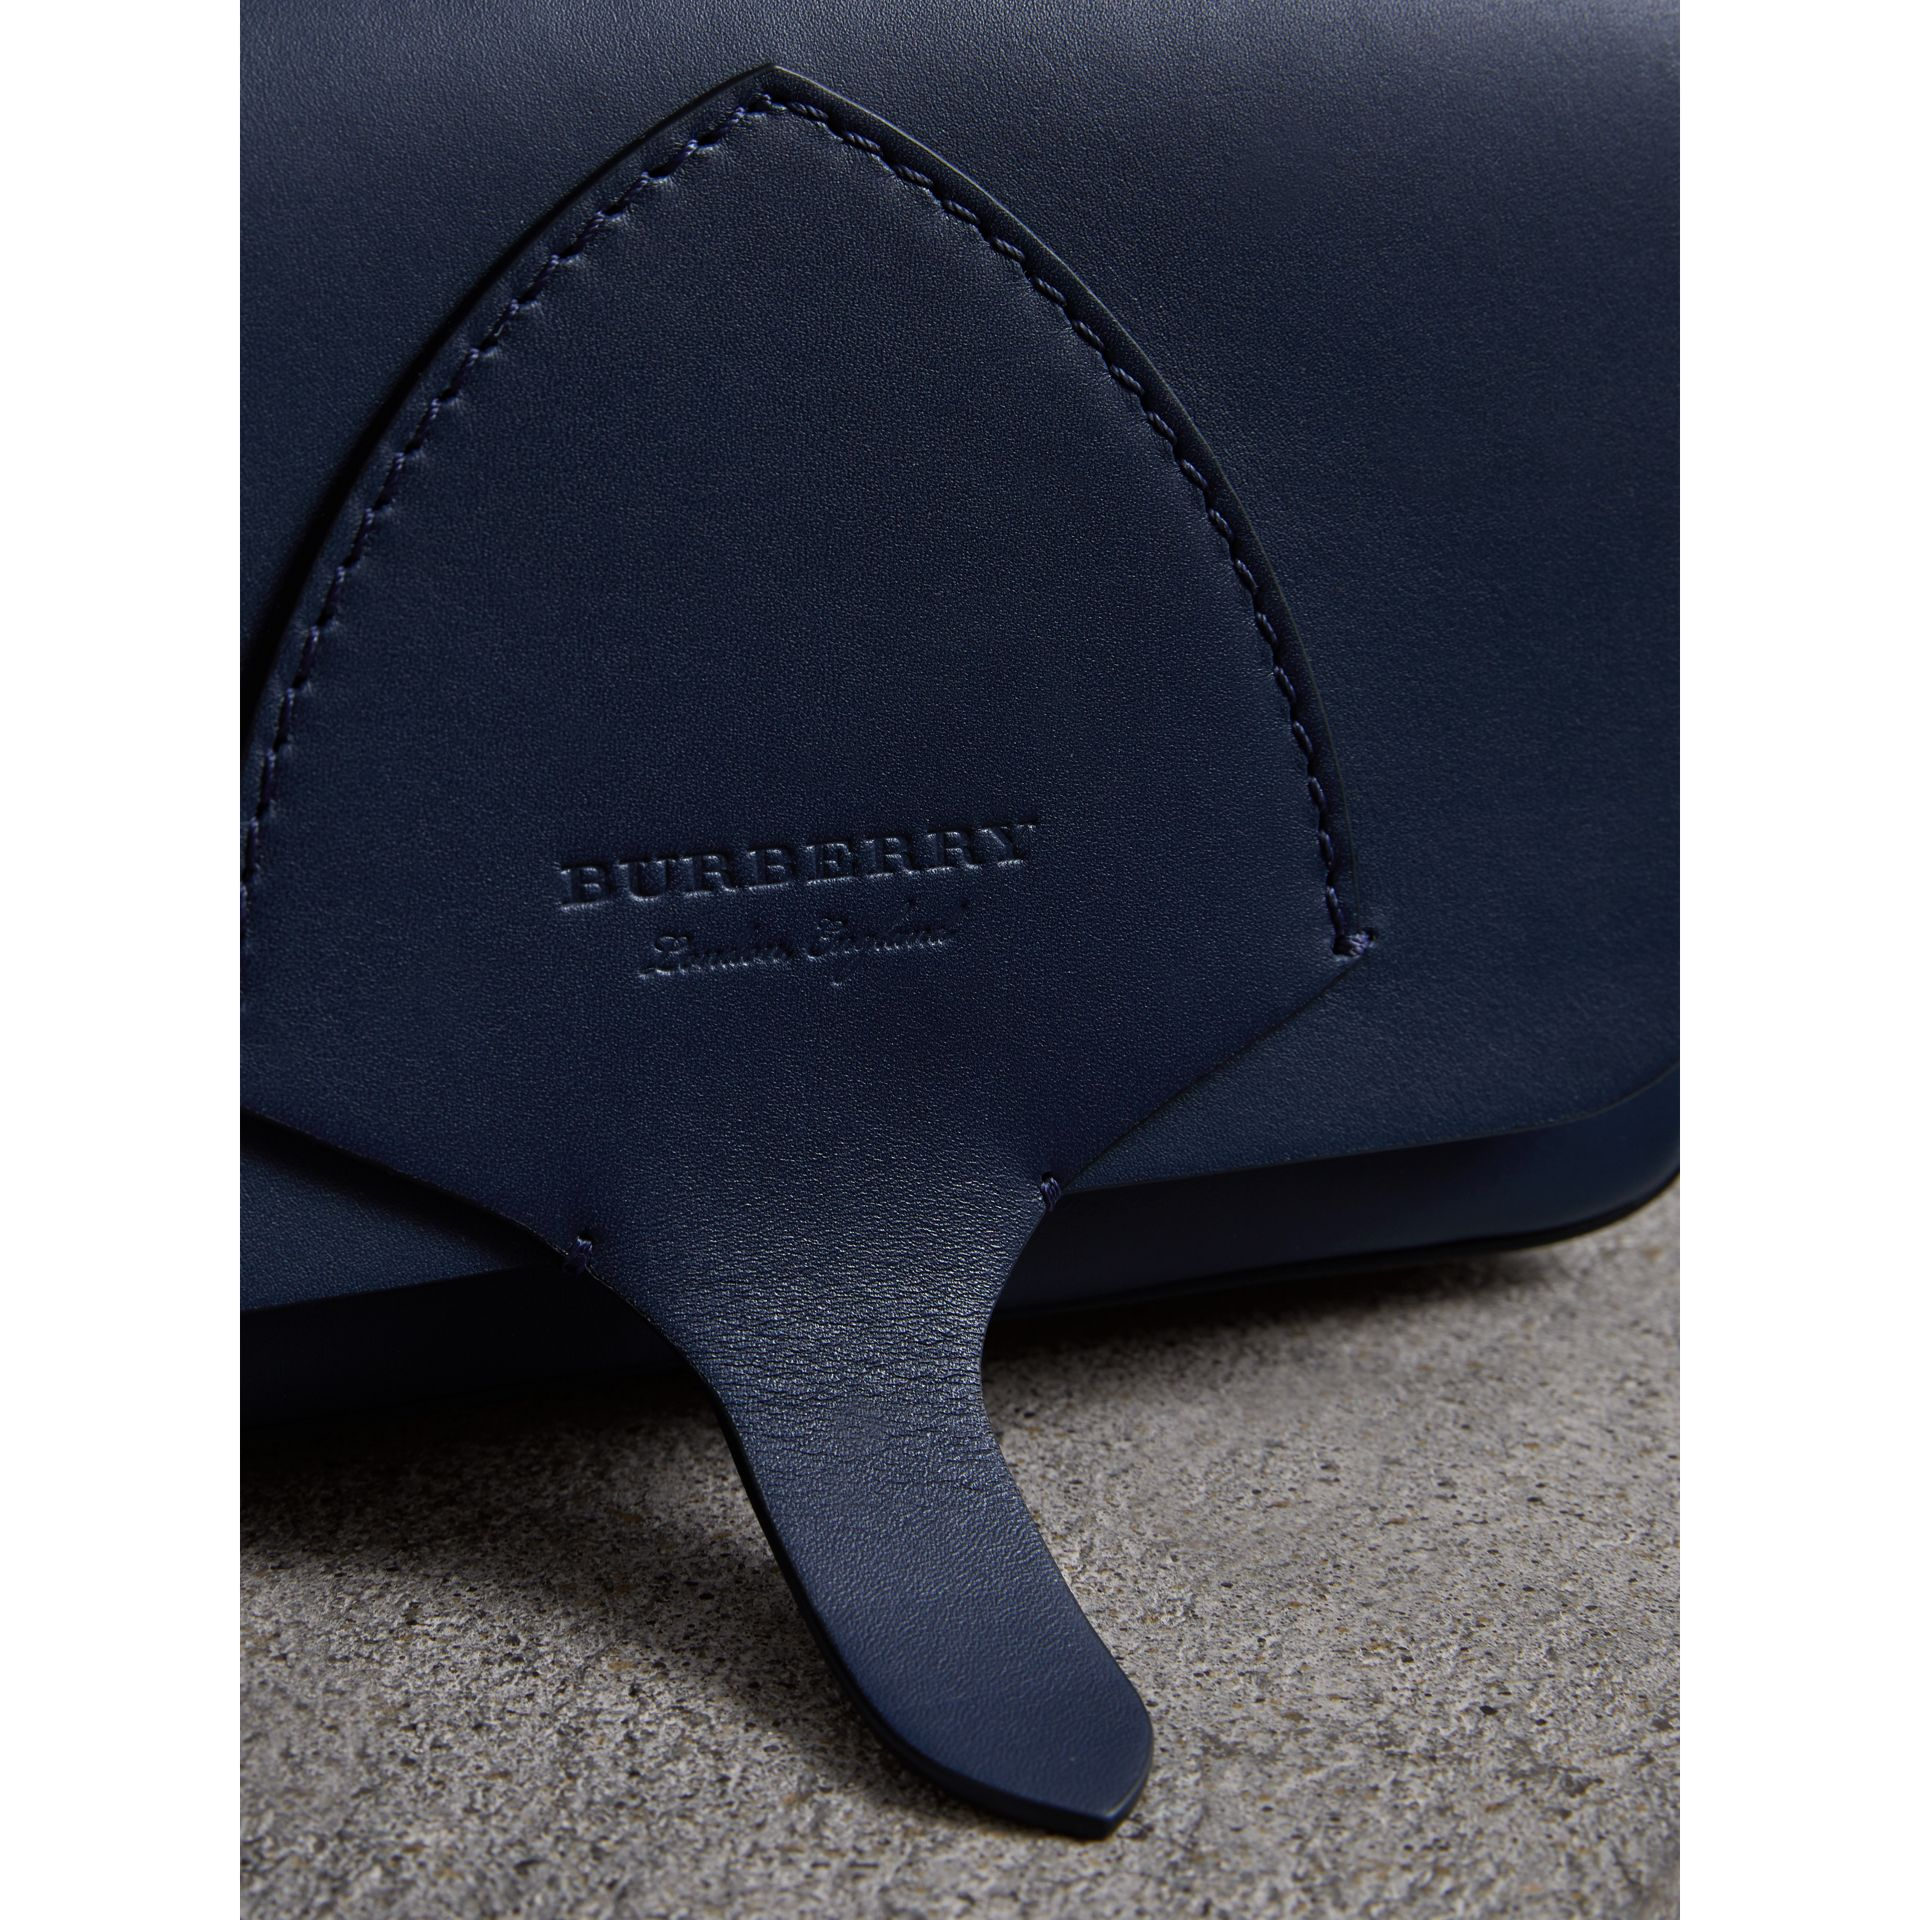 Equestrian Shield Leather Wallet with Detachable Strap in Mid Indigo - Women | Burberry - gallery image 1